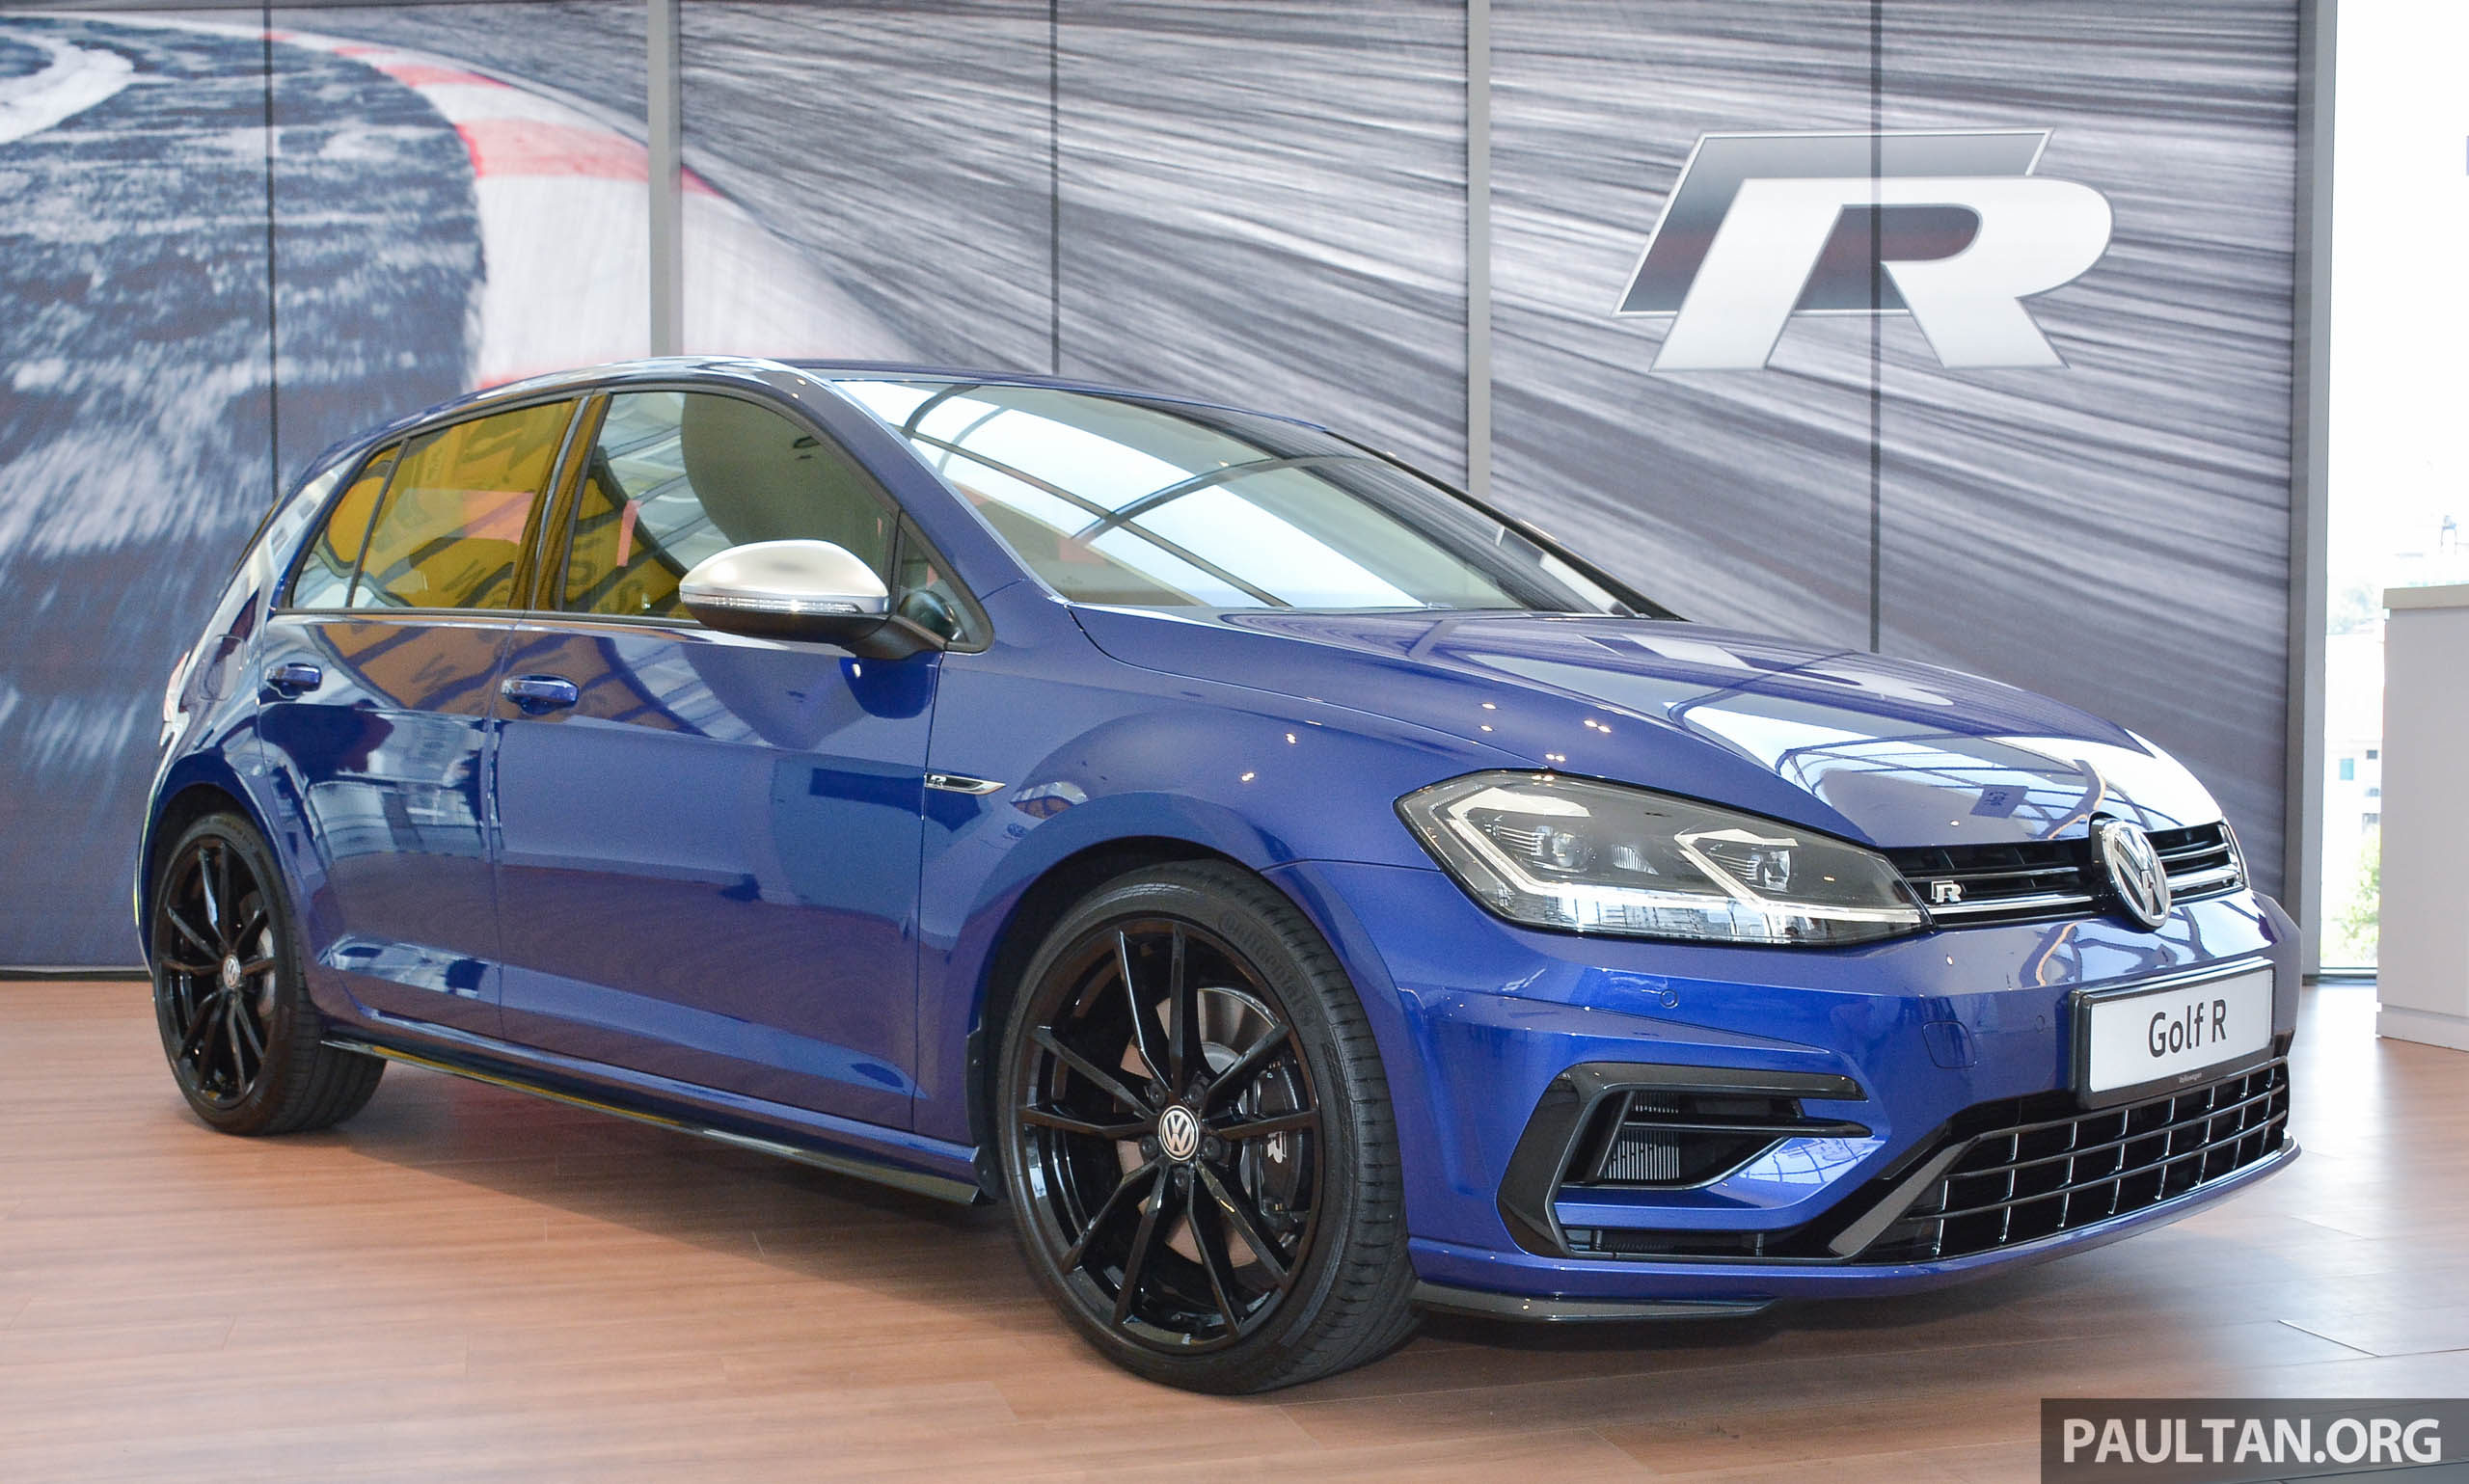 volkswagen golf r 2018 mendarat di pasaran malaysia 2 0 liter tsi berkuasa 290 ps 380 nm awd. Black Bedroom Furniture Sets. Home Design Ideas